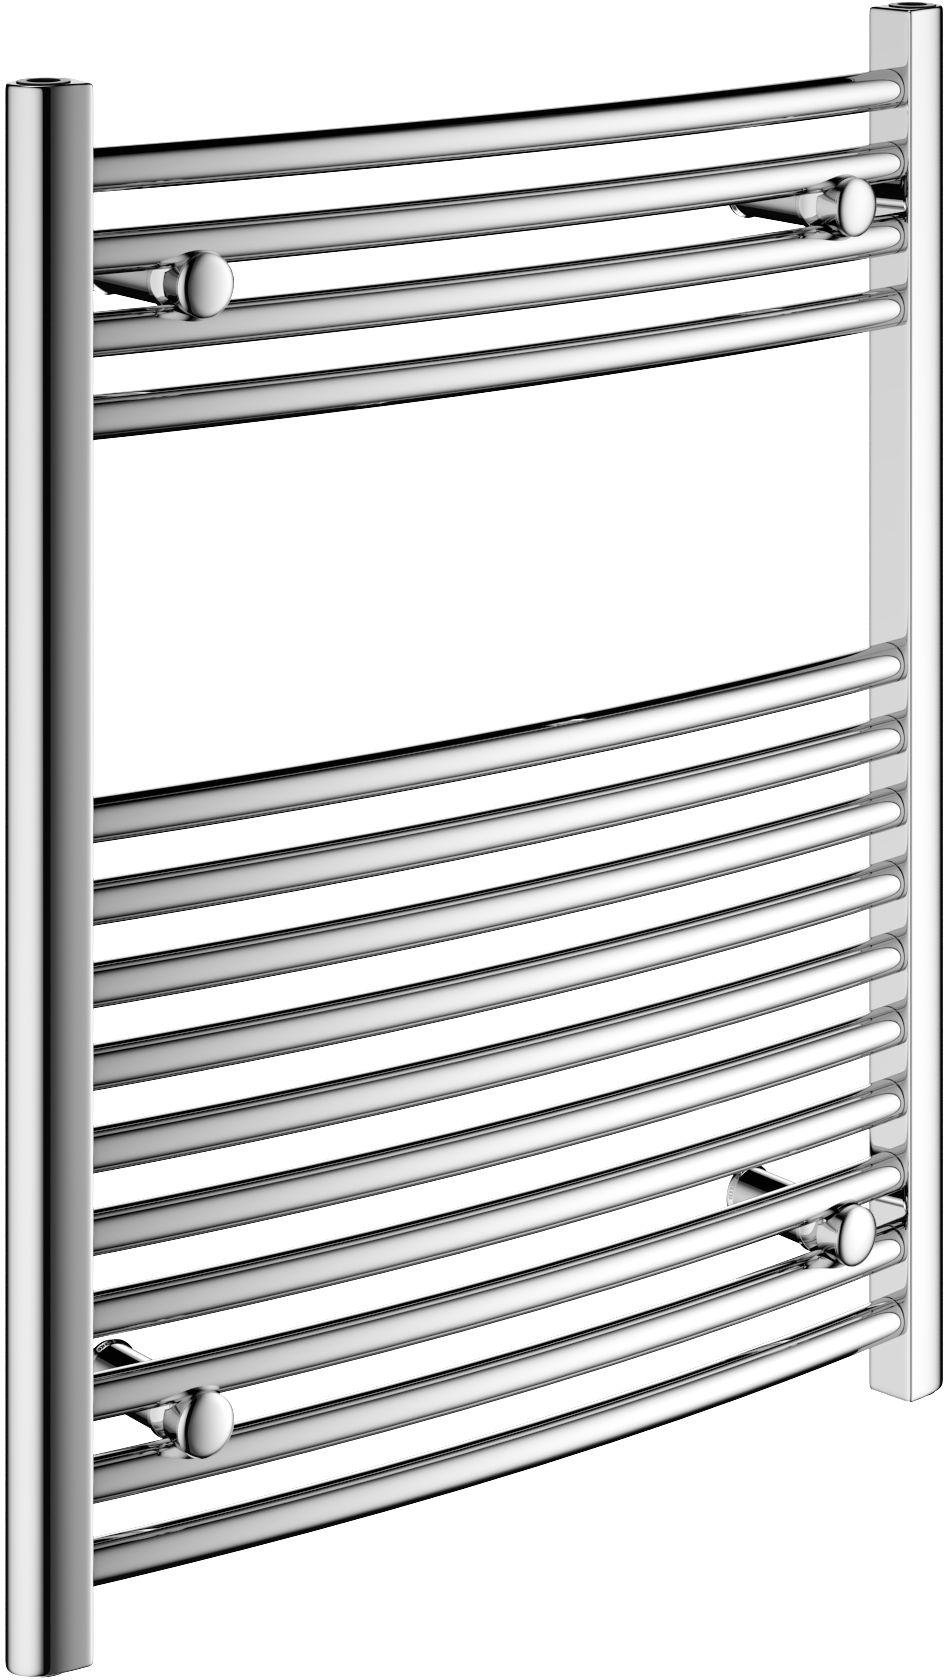 curved-towel-radiator-75-x-60cm-chrome